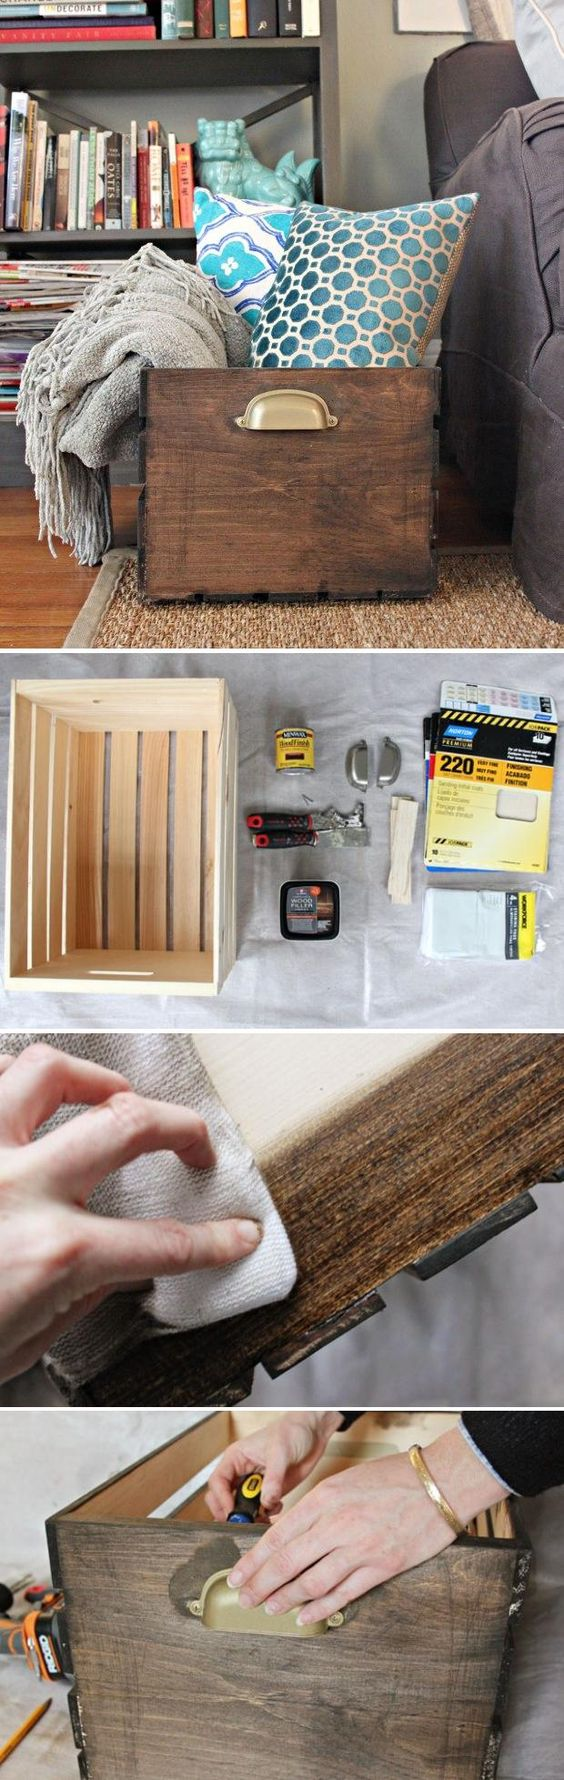 Be Creative: DIY Home Decor Ideas DIY Décor: How To Customize A Wooden Storage Crate: